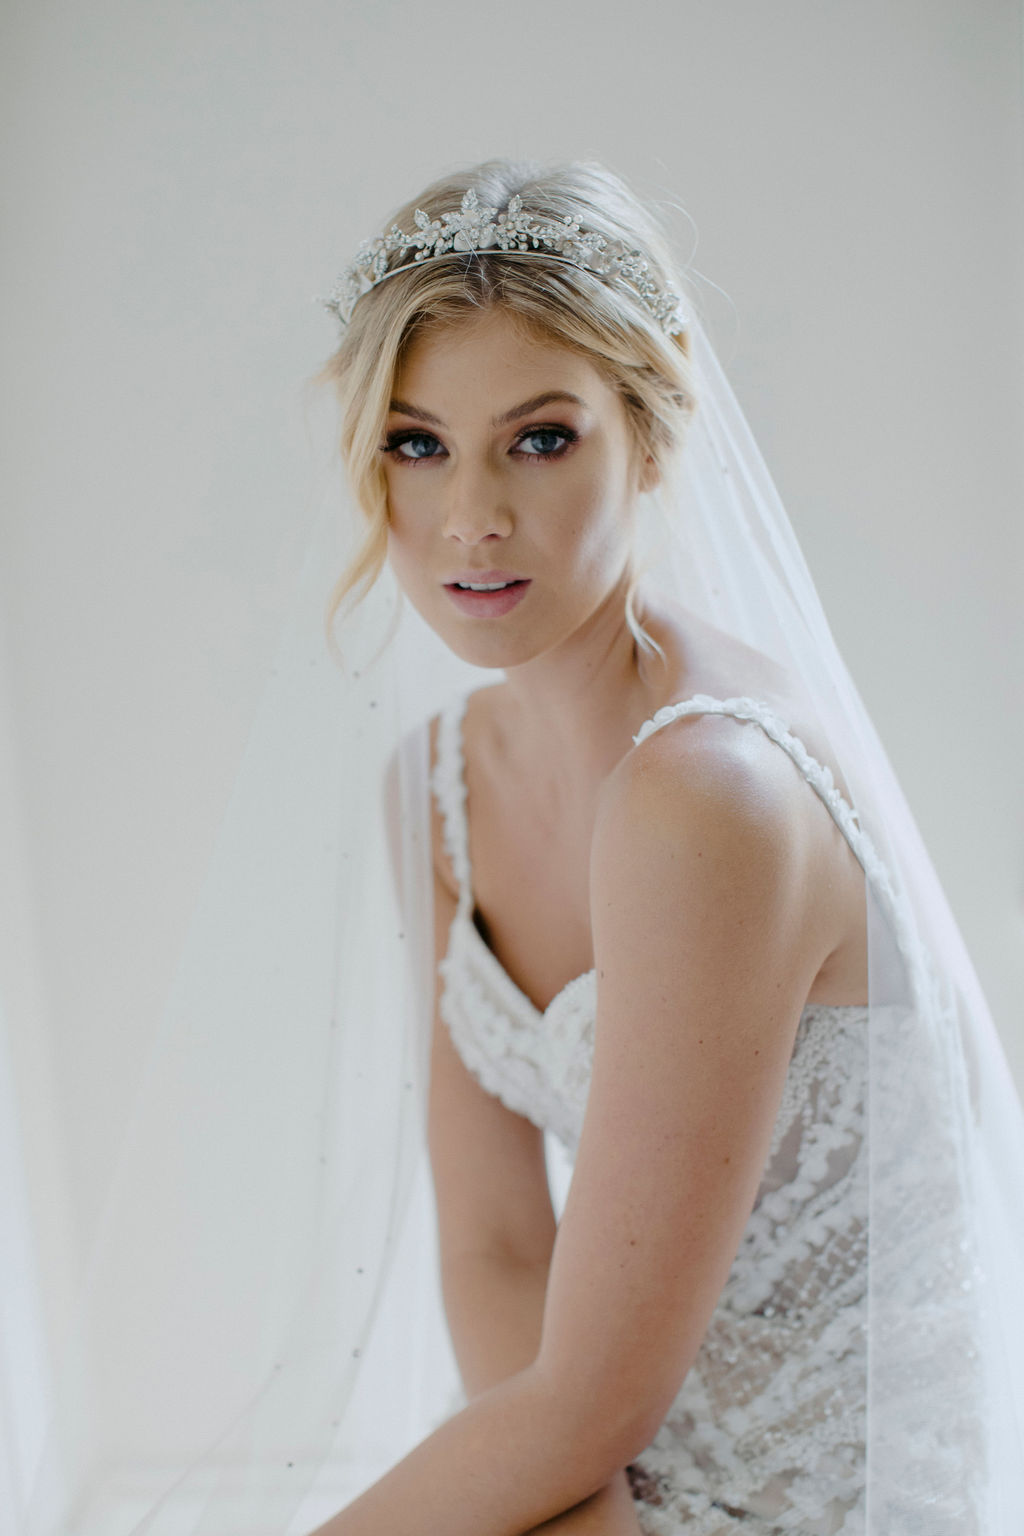 CASHMERE | CRYSTAL WEDDING TIARA by TANIA MARAS